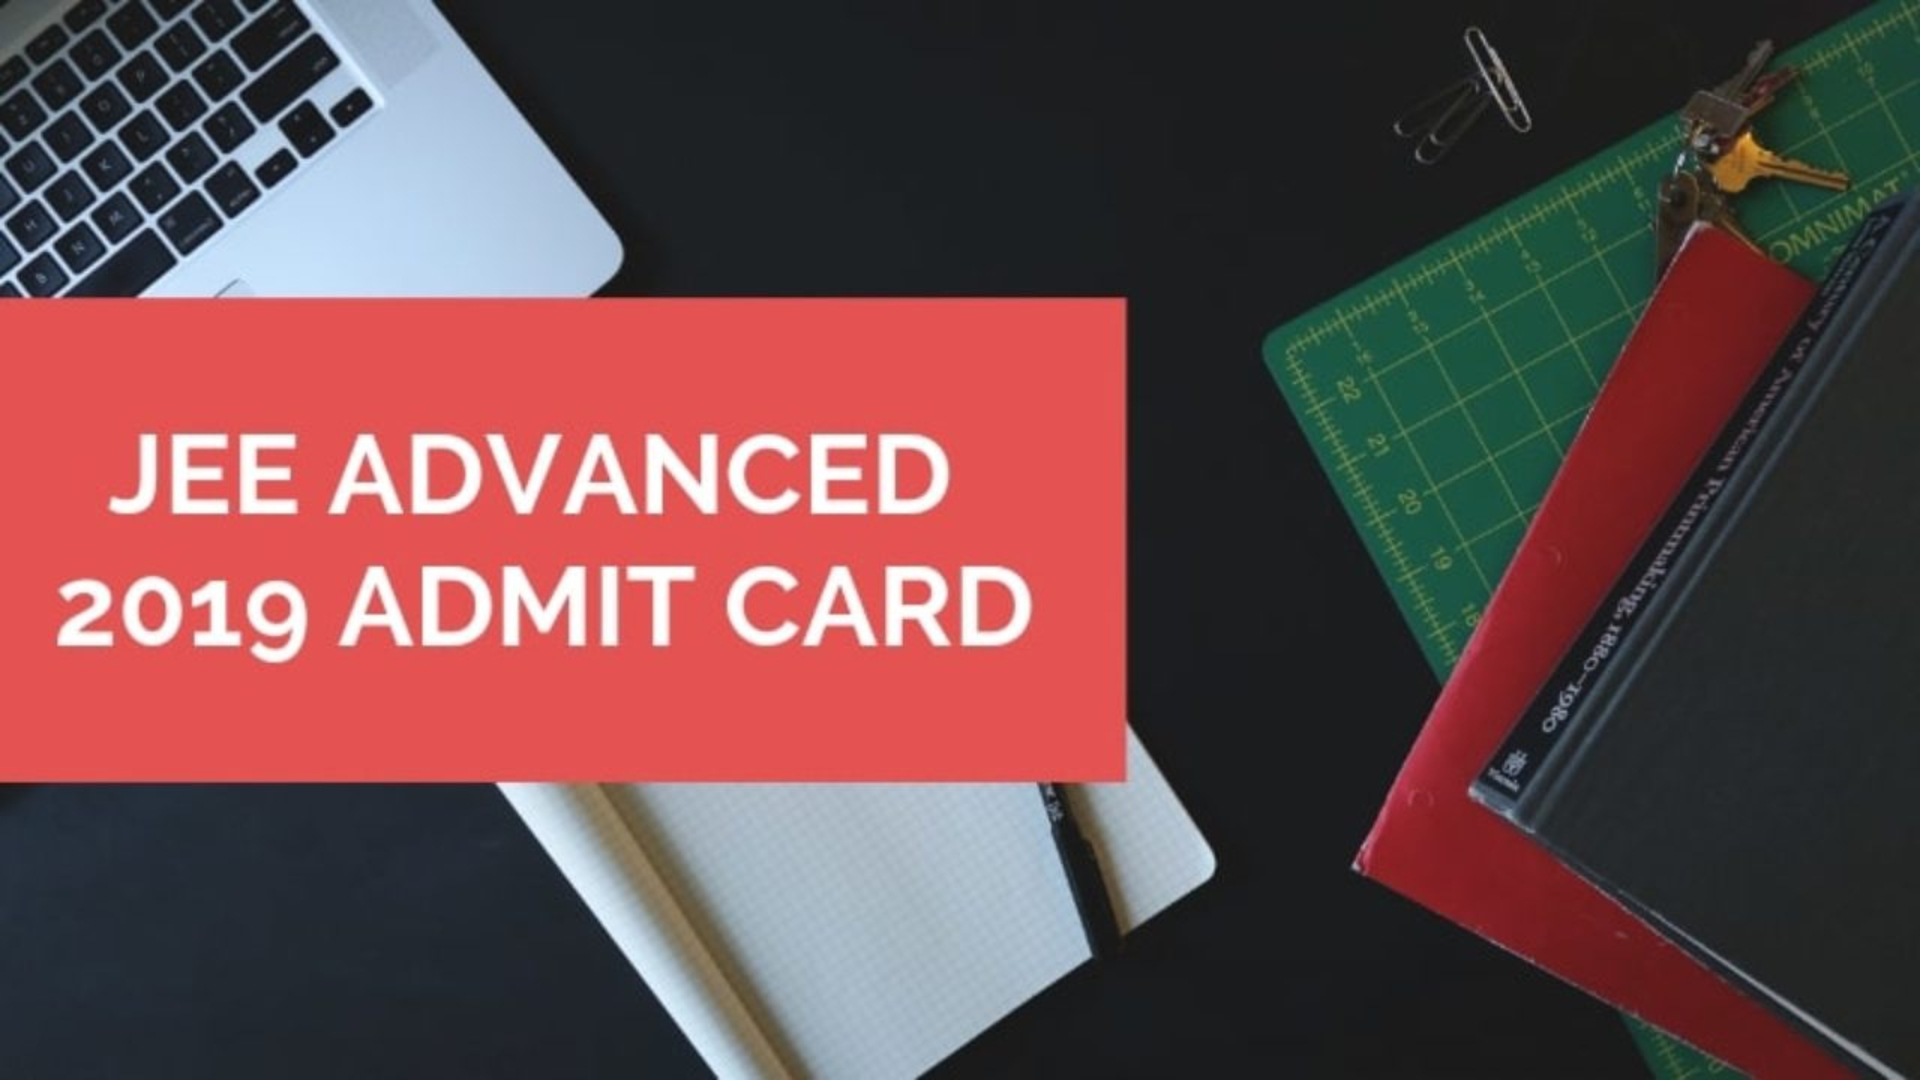 JEE Advanced Admit Card 2019 image